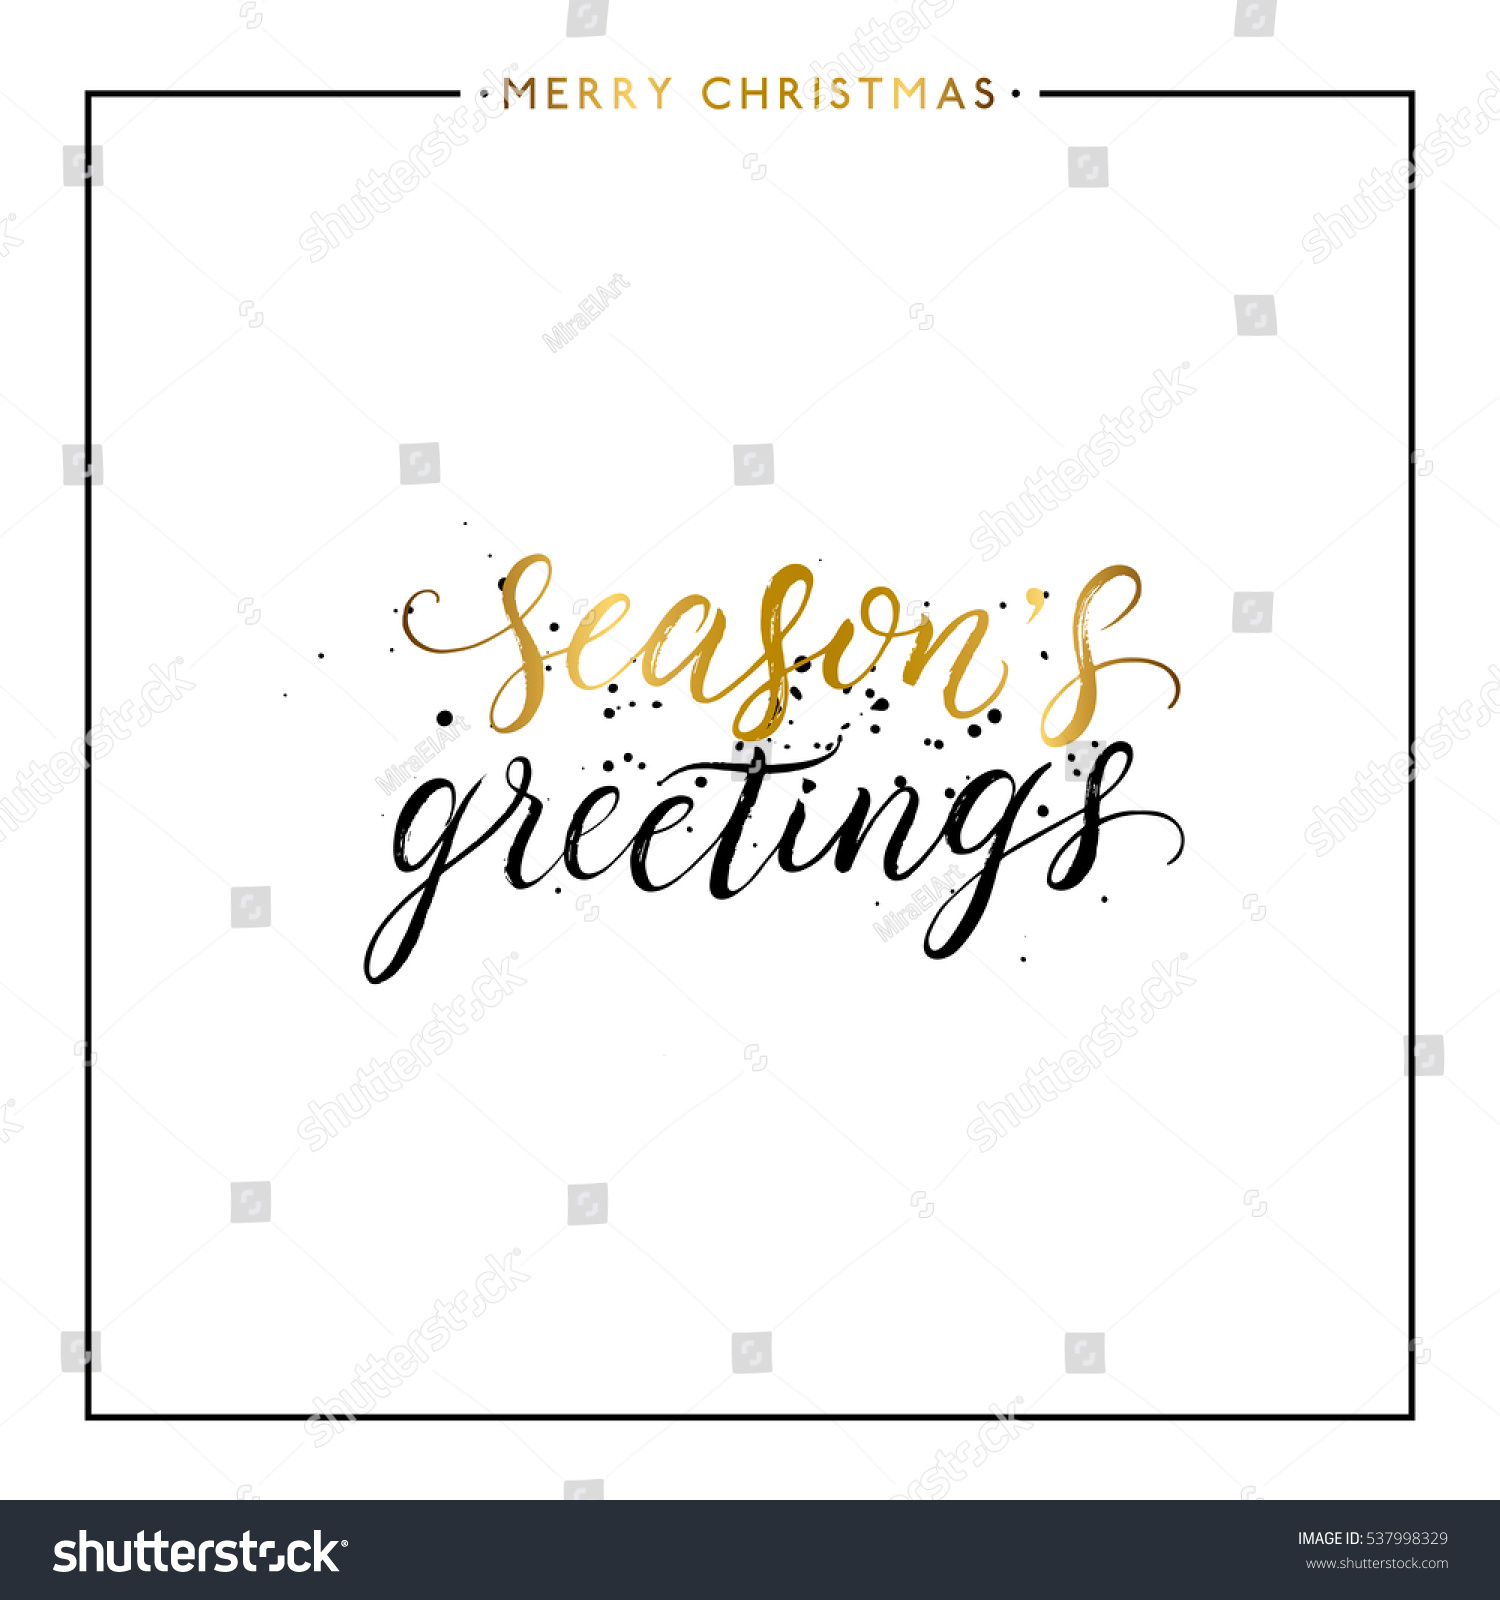 Seasons Greetings Gold Text Black Splashes Stock Vector Royalty